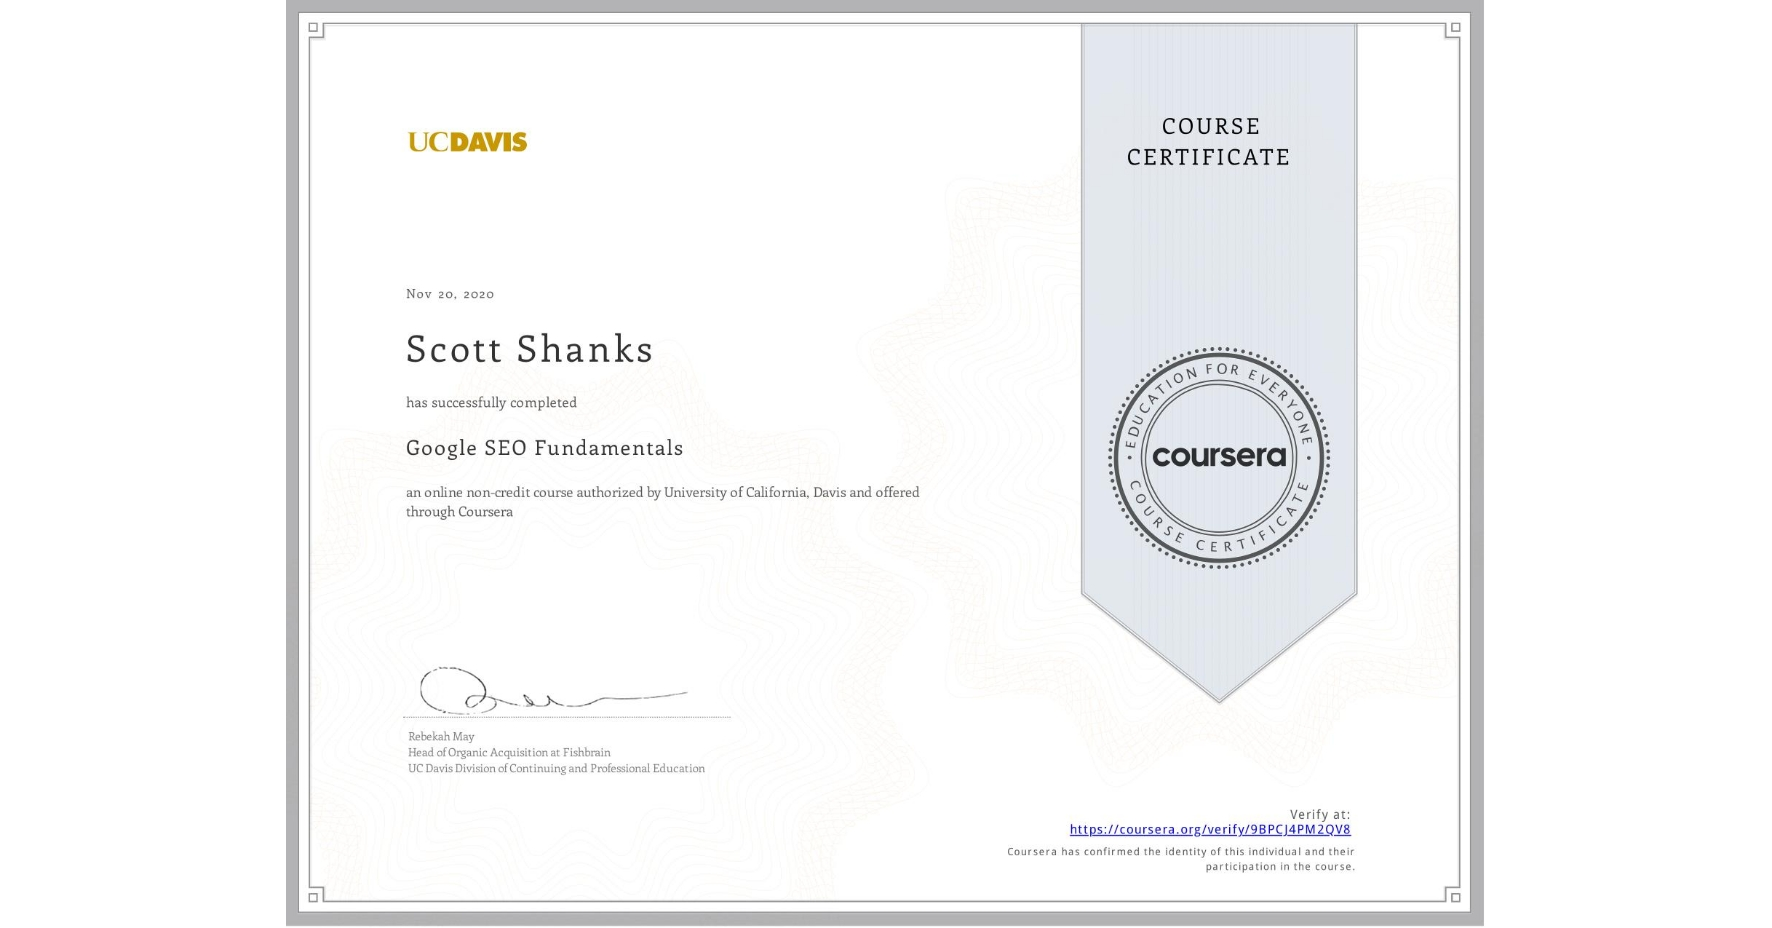 View certificate for Scott Shanks, Google SEO Fundamentals, an online non-credit course authorized by University of California, Davis and offered through Coursera